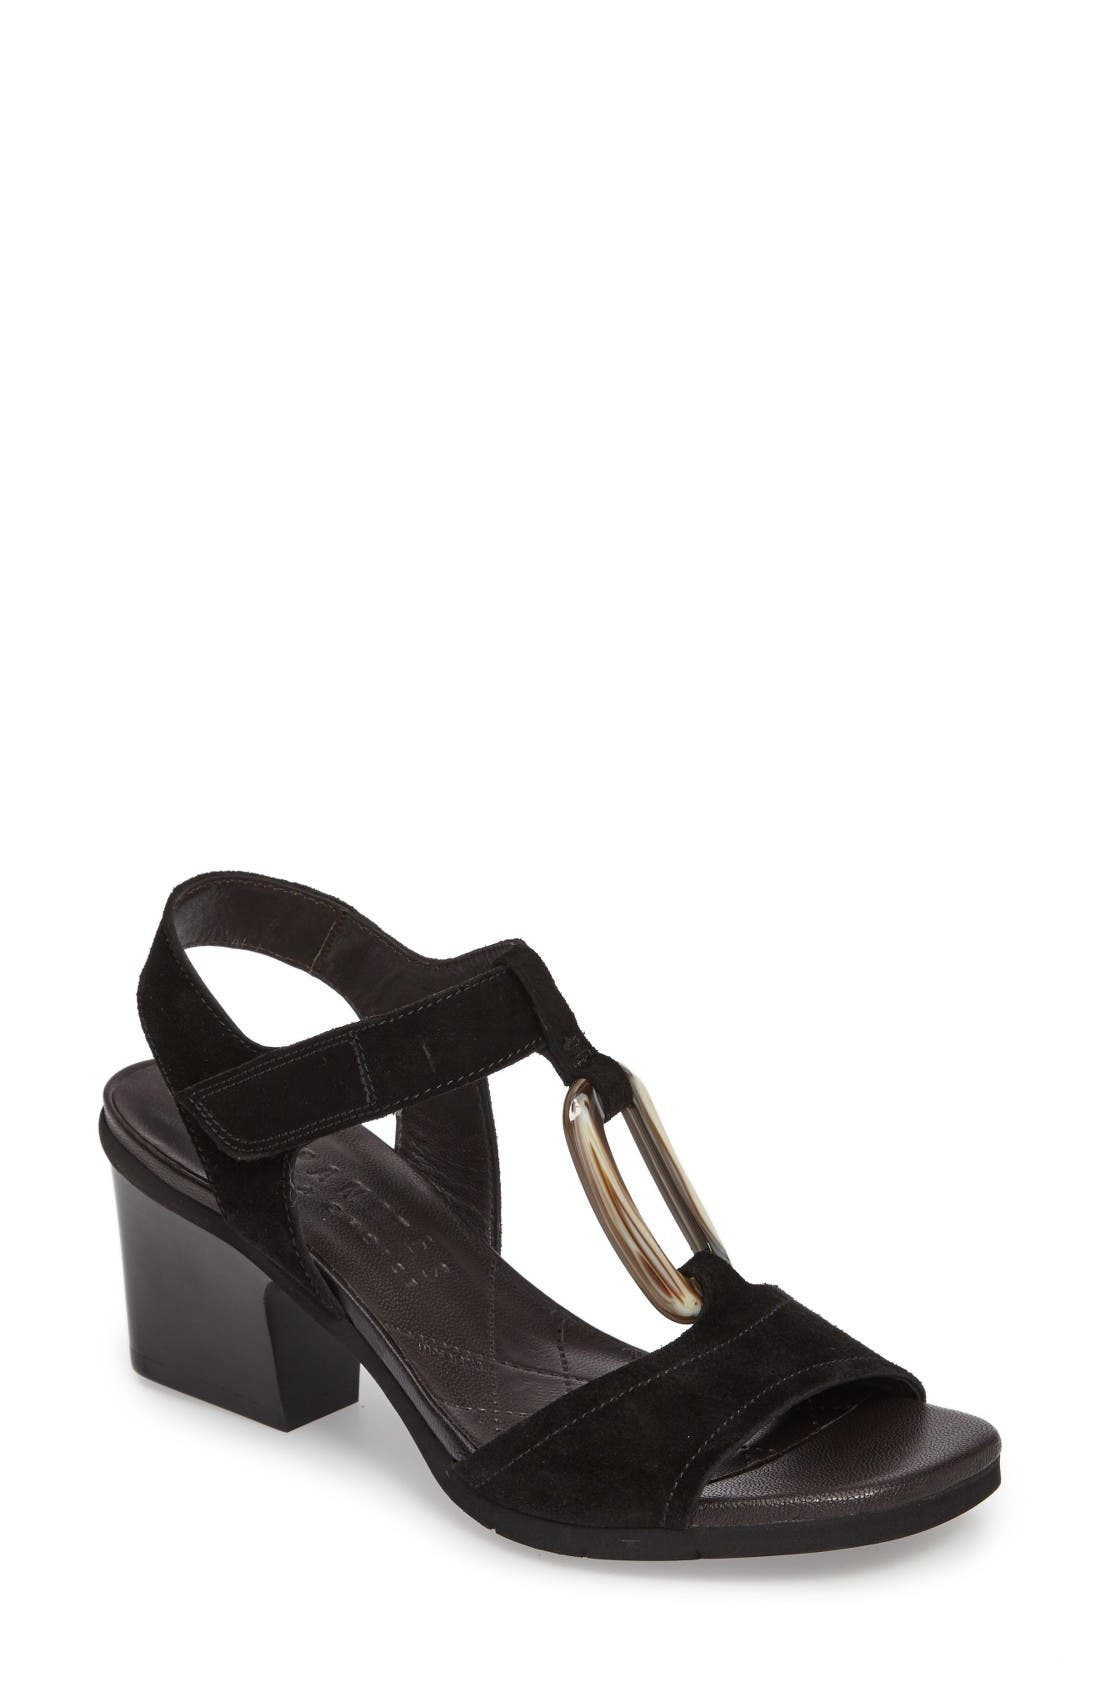 Alternate Image 1 Selected - Hispanitas Ursula Ringed T-Strap Sandal (Women)